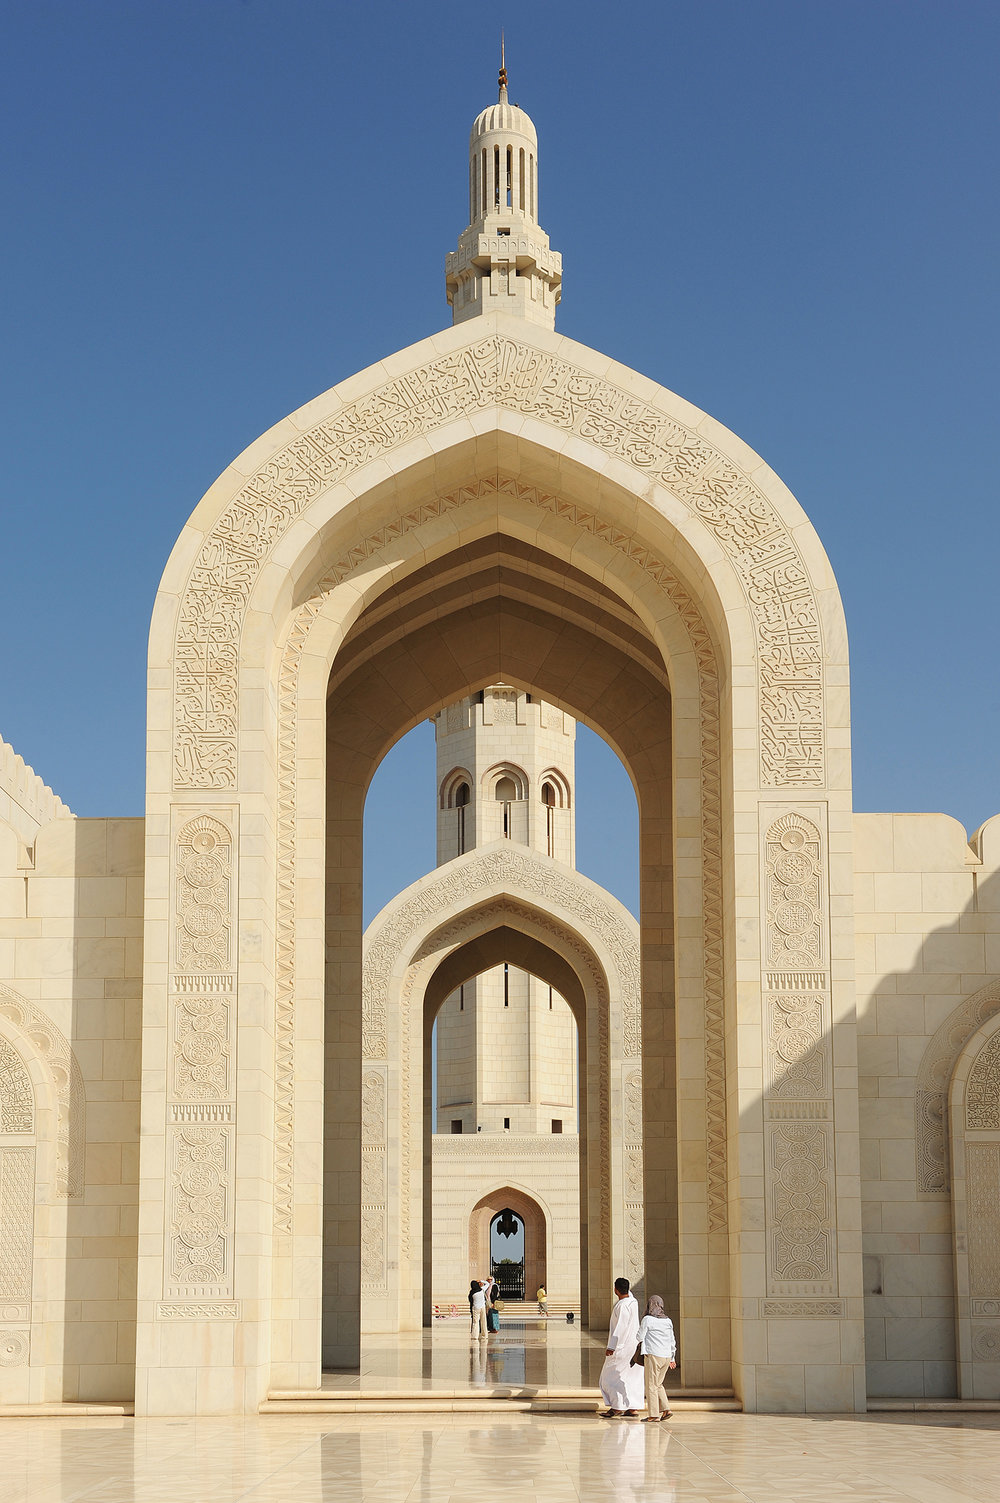 Sultan Qaboos Grand Mosque 1.jpg